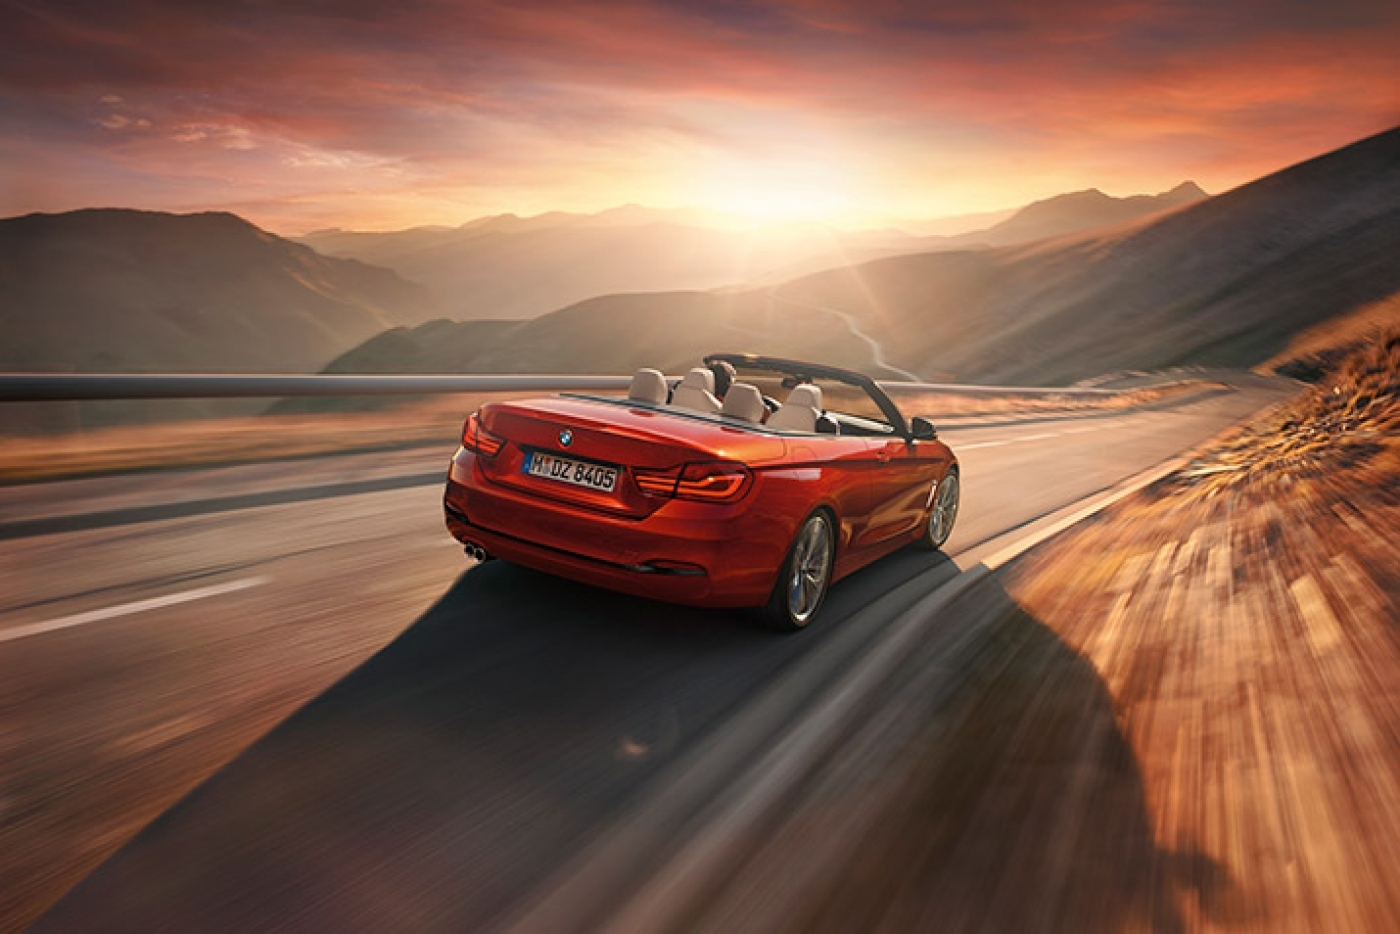 The Bmw 4 Series Lci 715X477 1 Retouch 1400 934 S C1